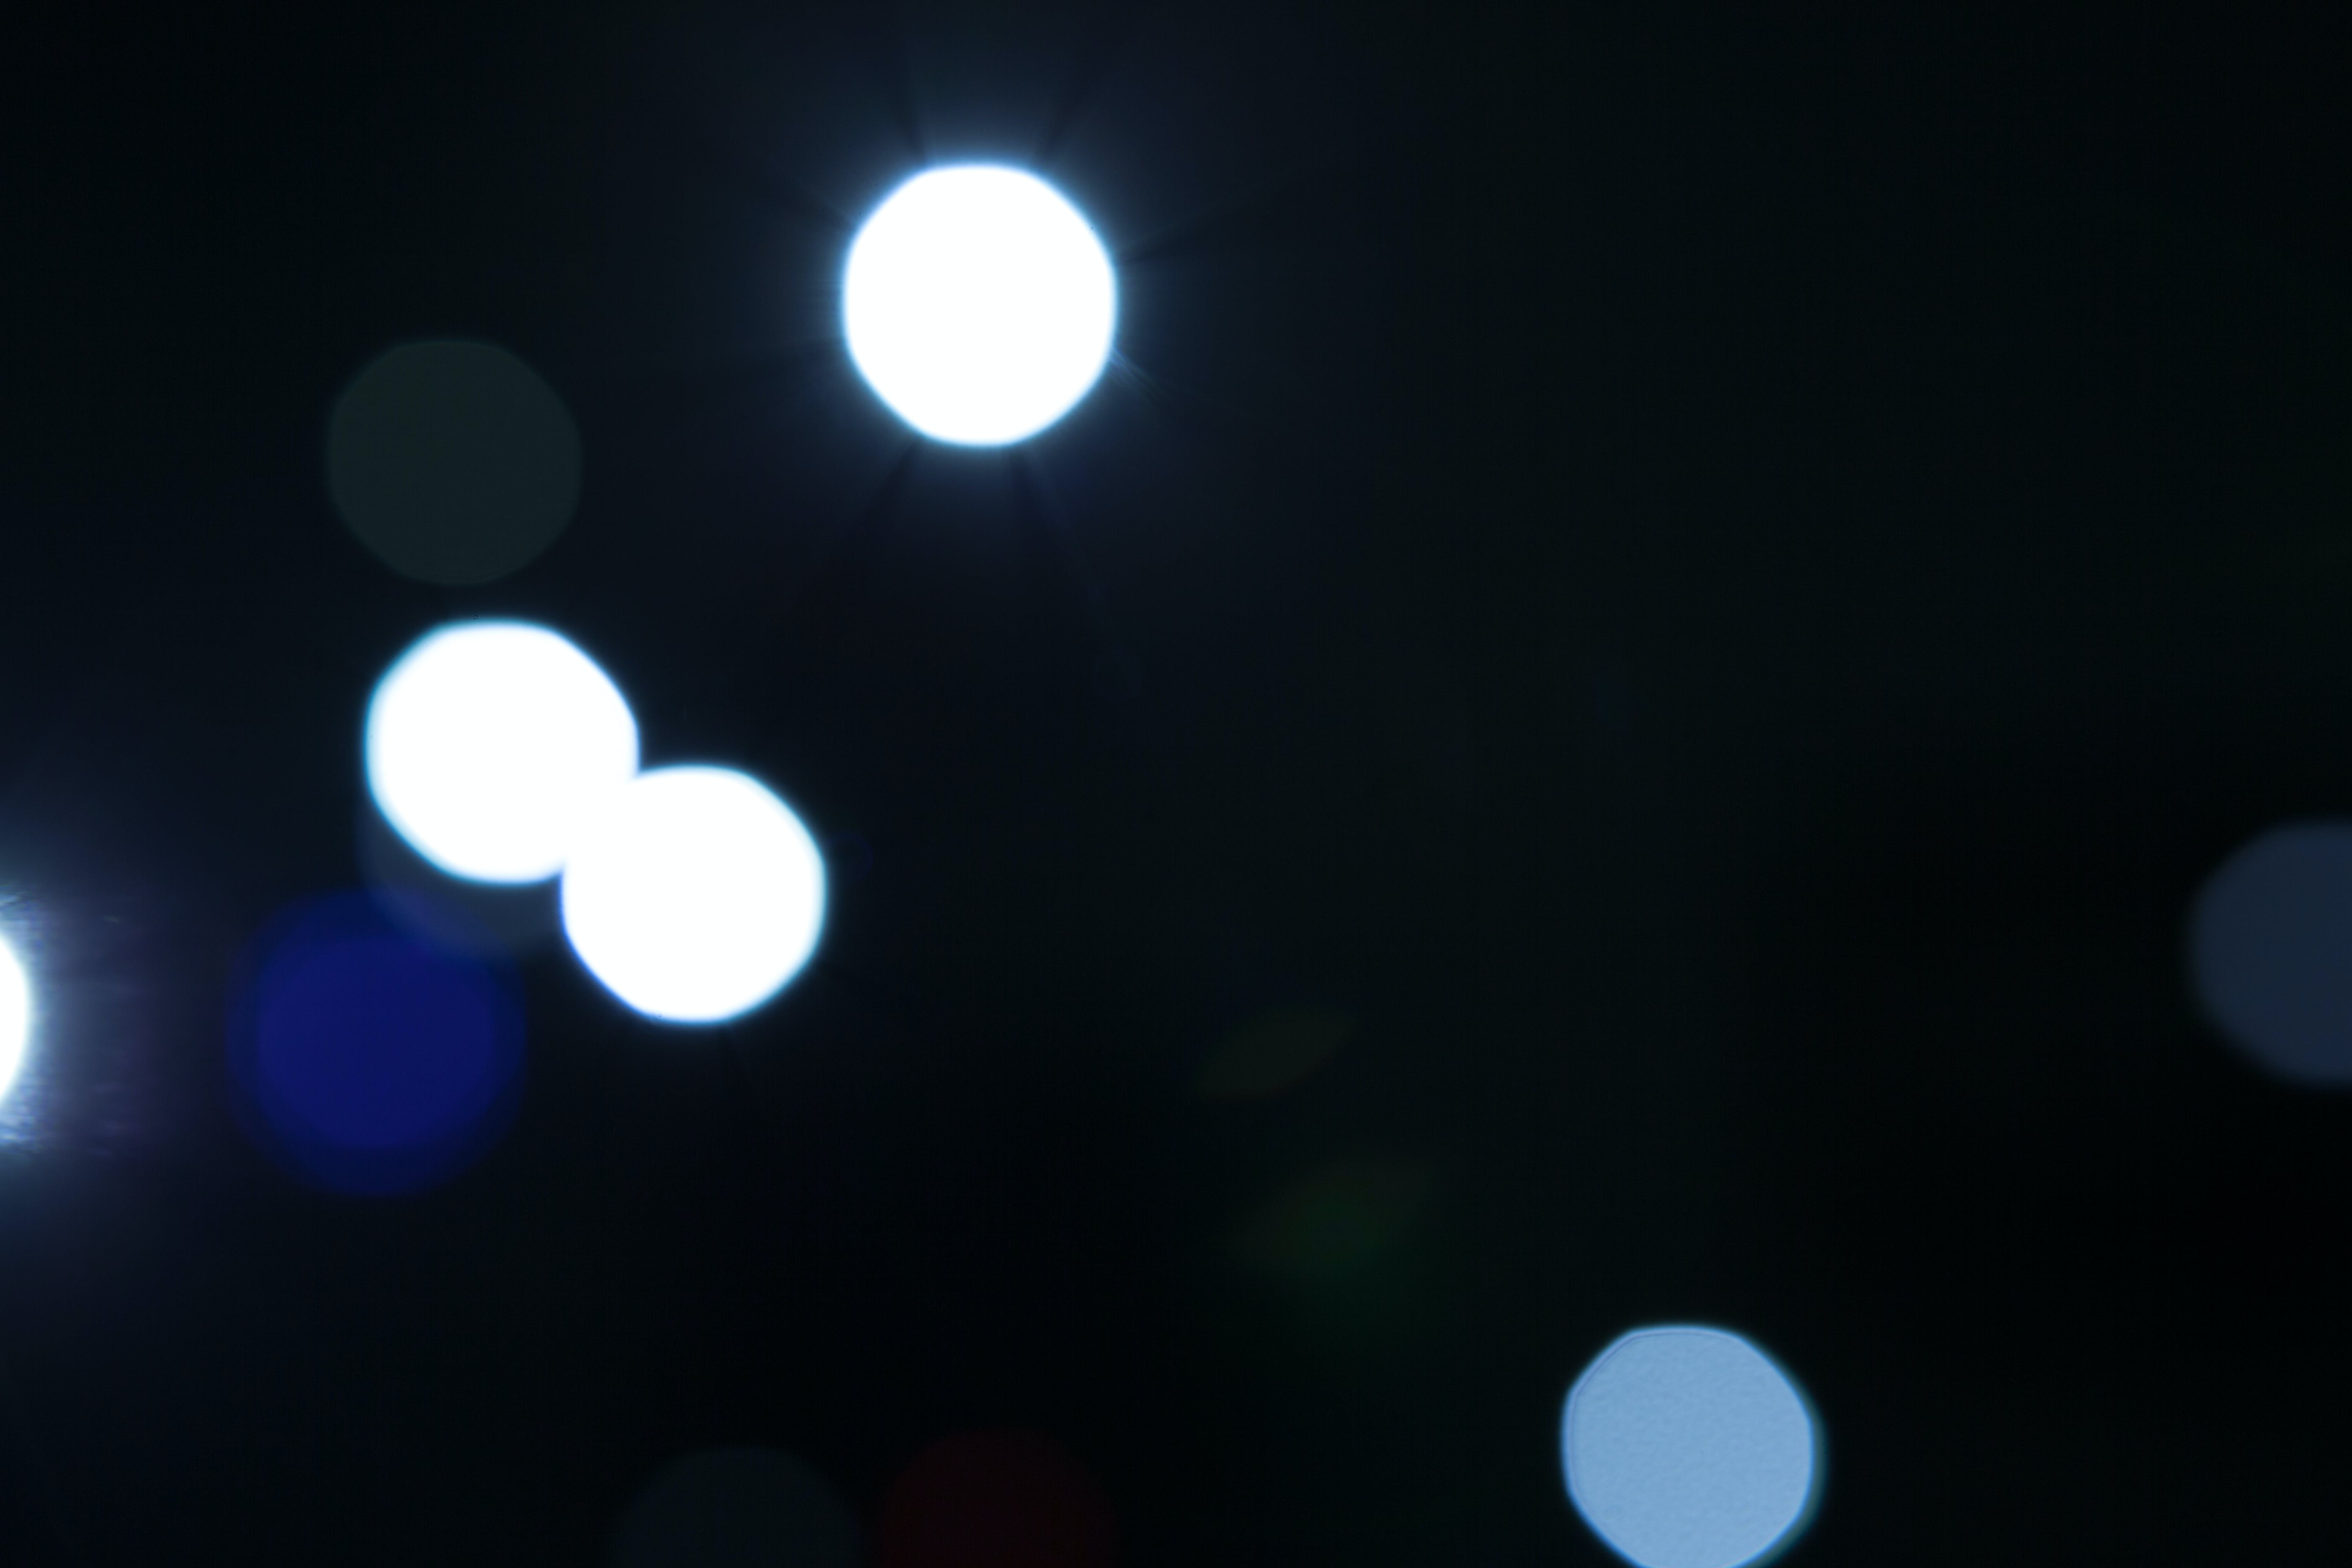 Bokeh Photography of Blue and White Lights